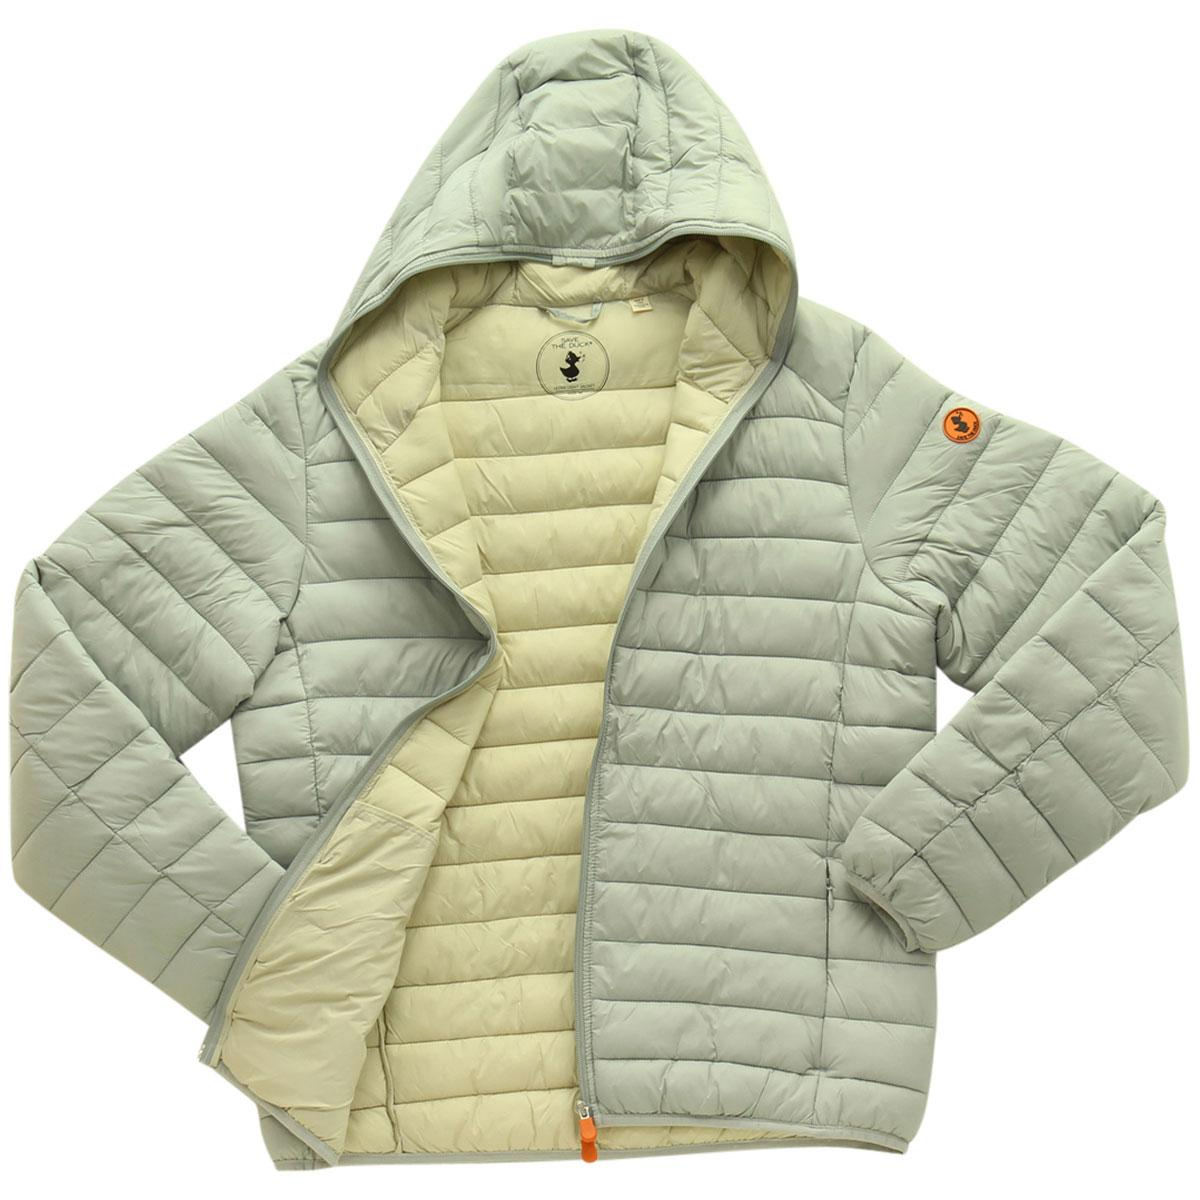 Image of Save The Duck Men's Ultra Light Hooded Long Sleeve Jacket - Frost Grey - Large